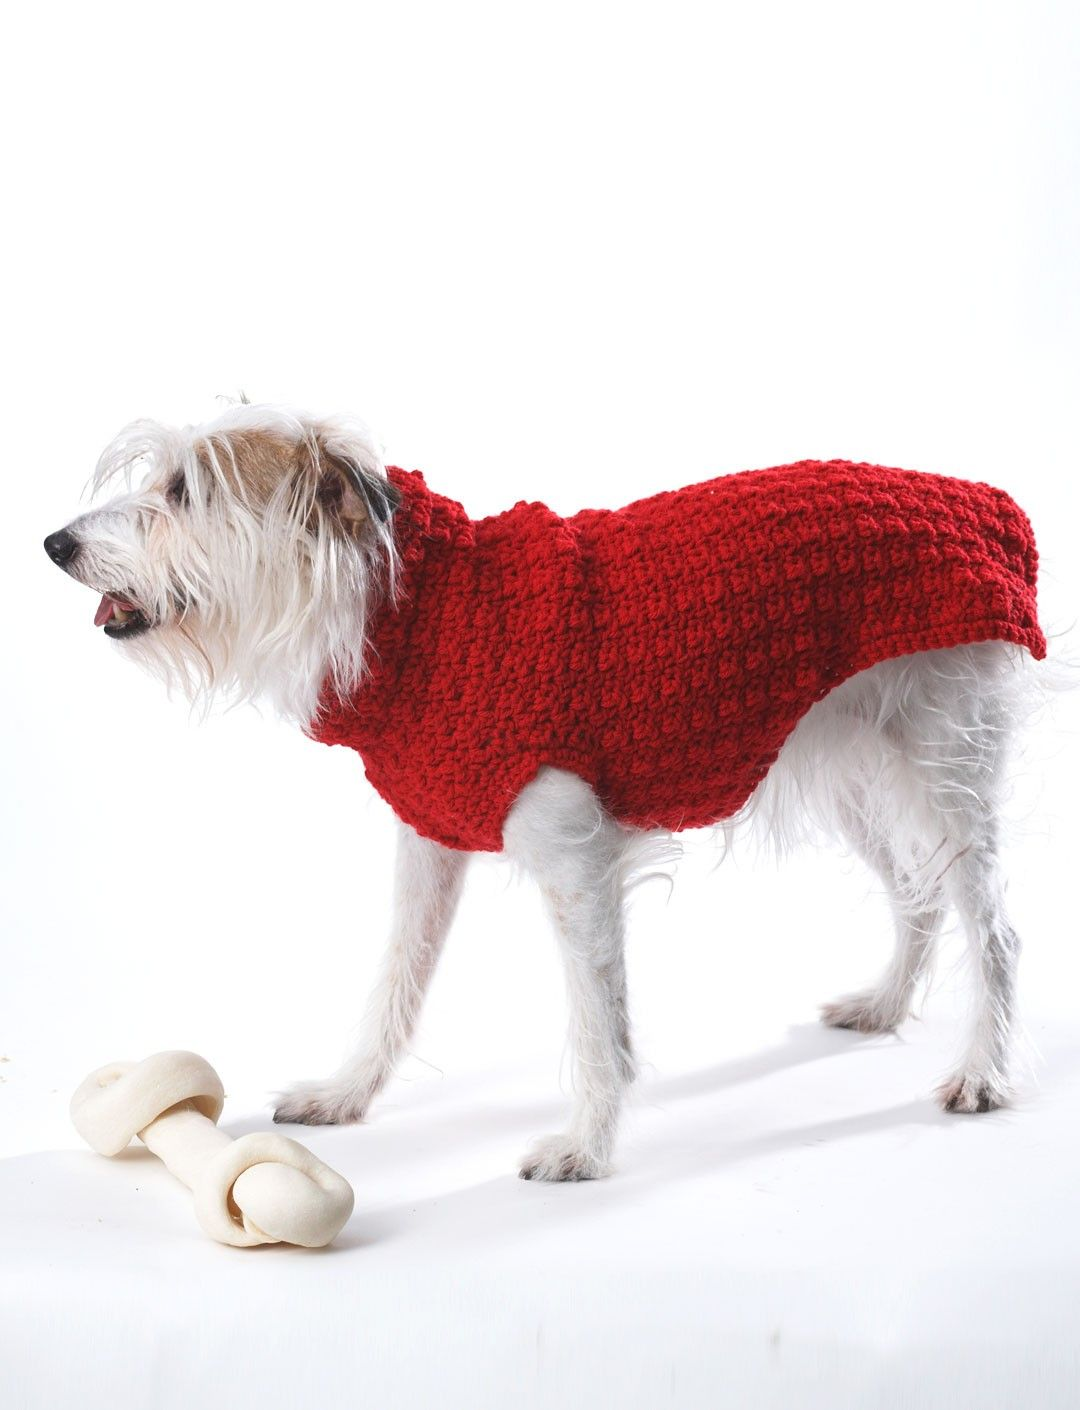 Yarnspirations bernat crochet dog coat patterns yarnspirations bernat crochet dog coat patterns yarnspirations bankloansurffo Gallery